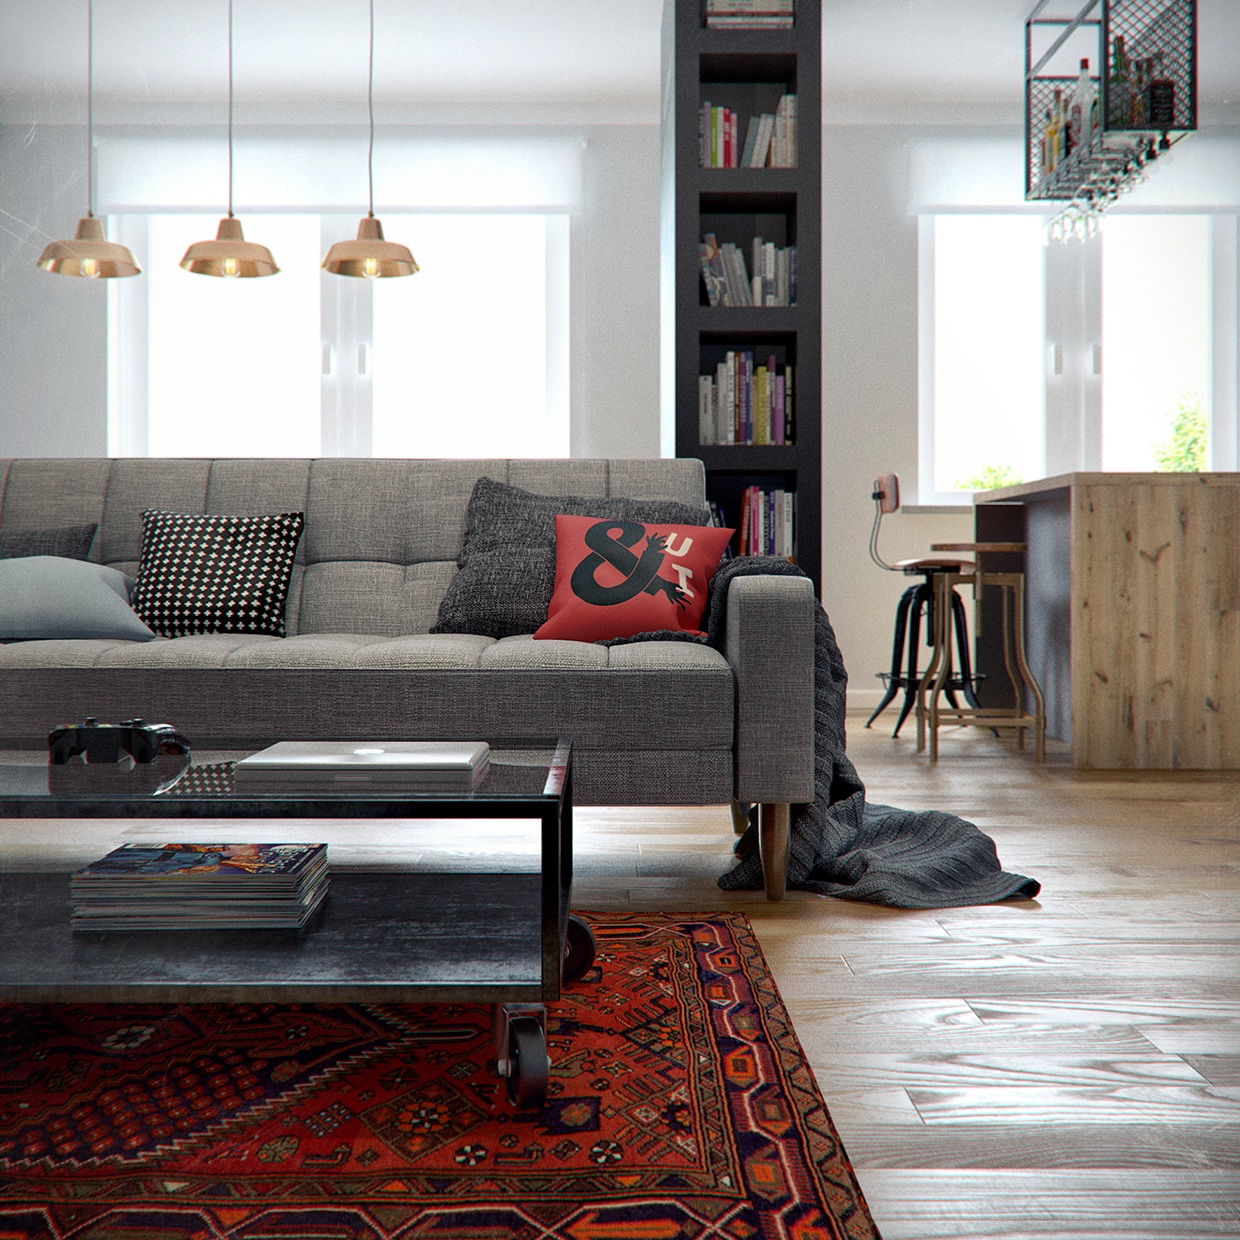 Single Apartment: Eclectic Single Bedroom Apartment With Open Floor Plan